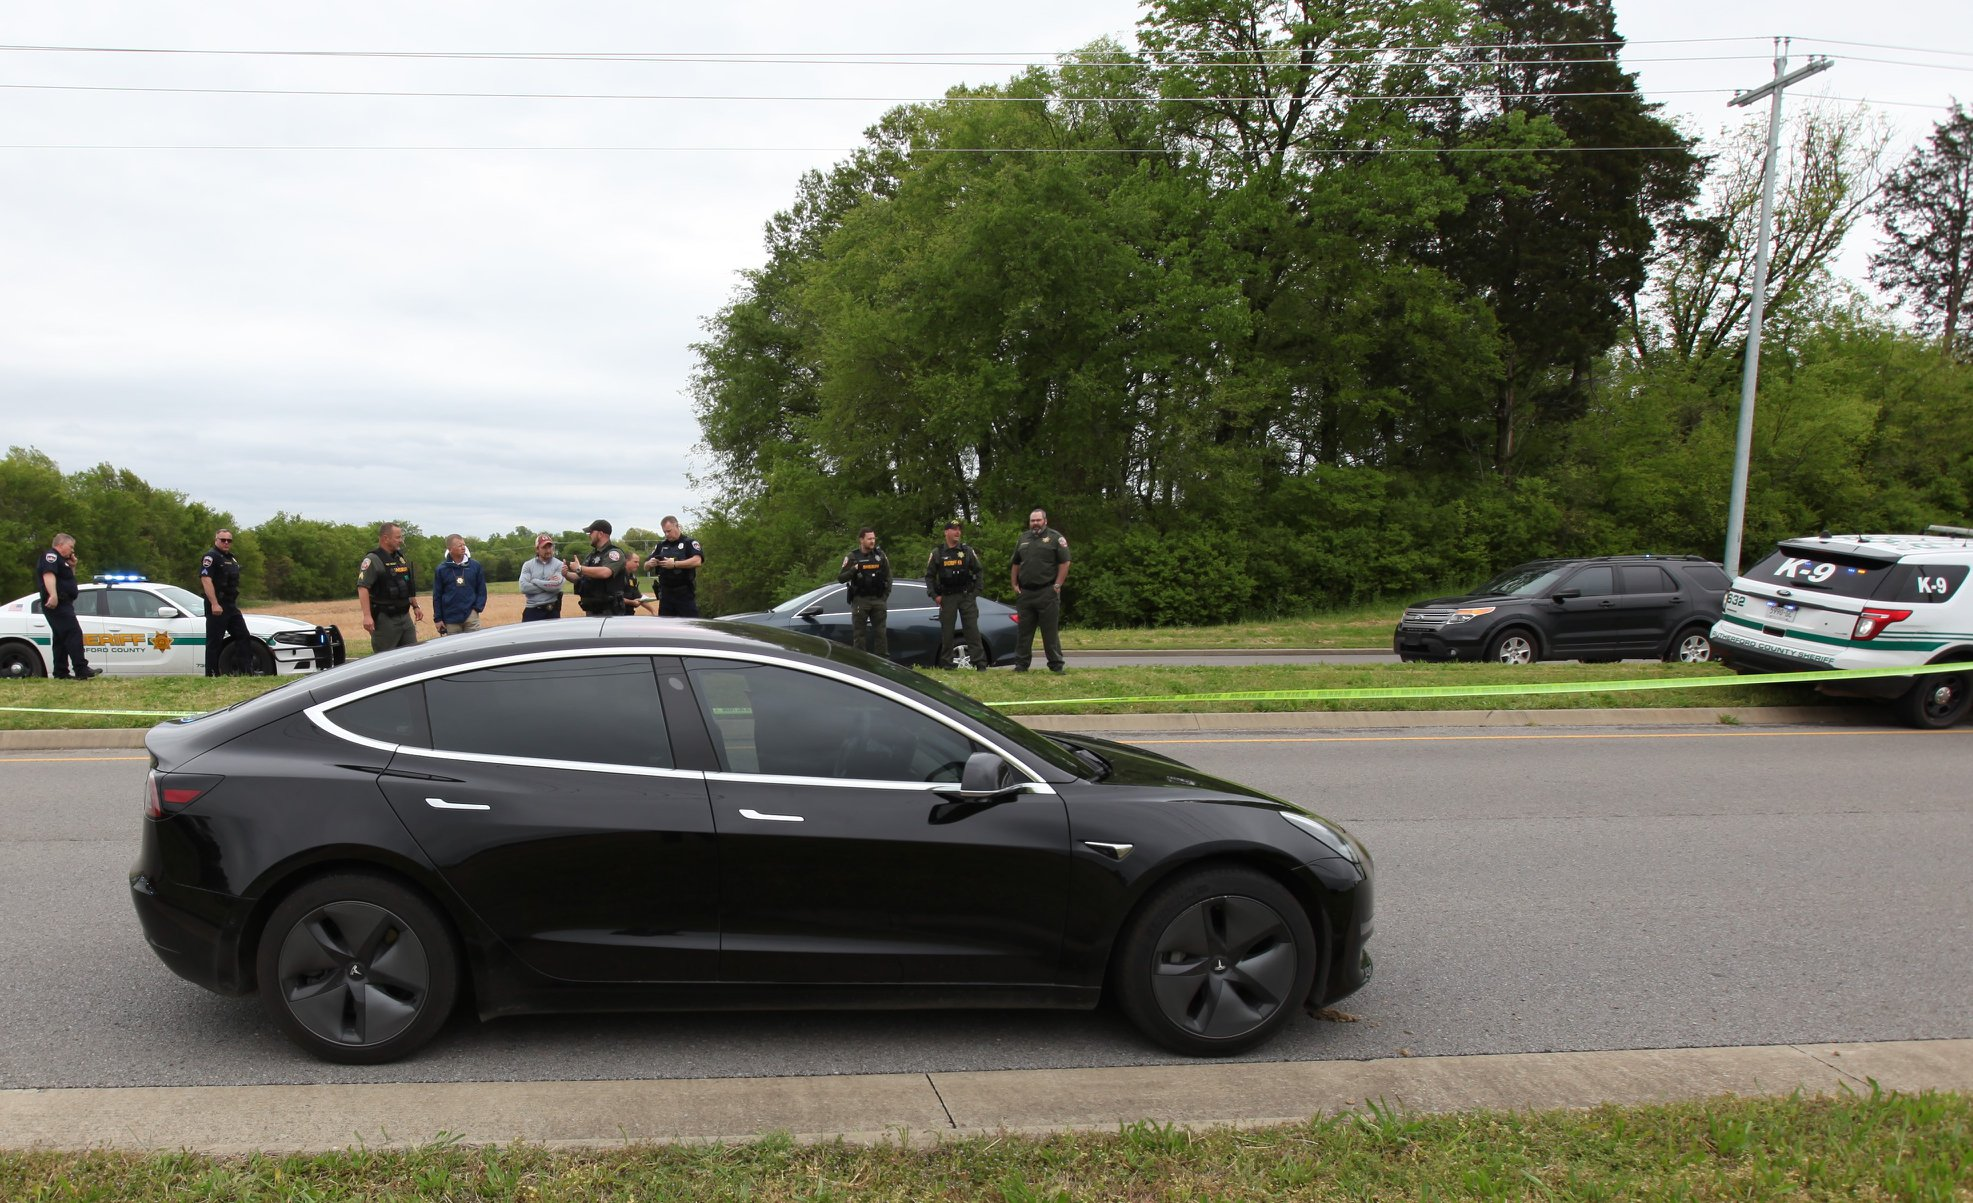 A $10,000 reward continues to be offered for information leading to the arrest and prosecution of the person who shot a Murfreesboro woman on April 23rd. The shooting happened on Veterans Parkway, according to a Rutherford County Sheriff's detective.